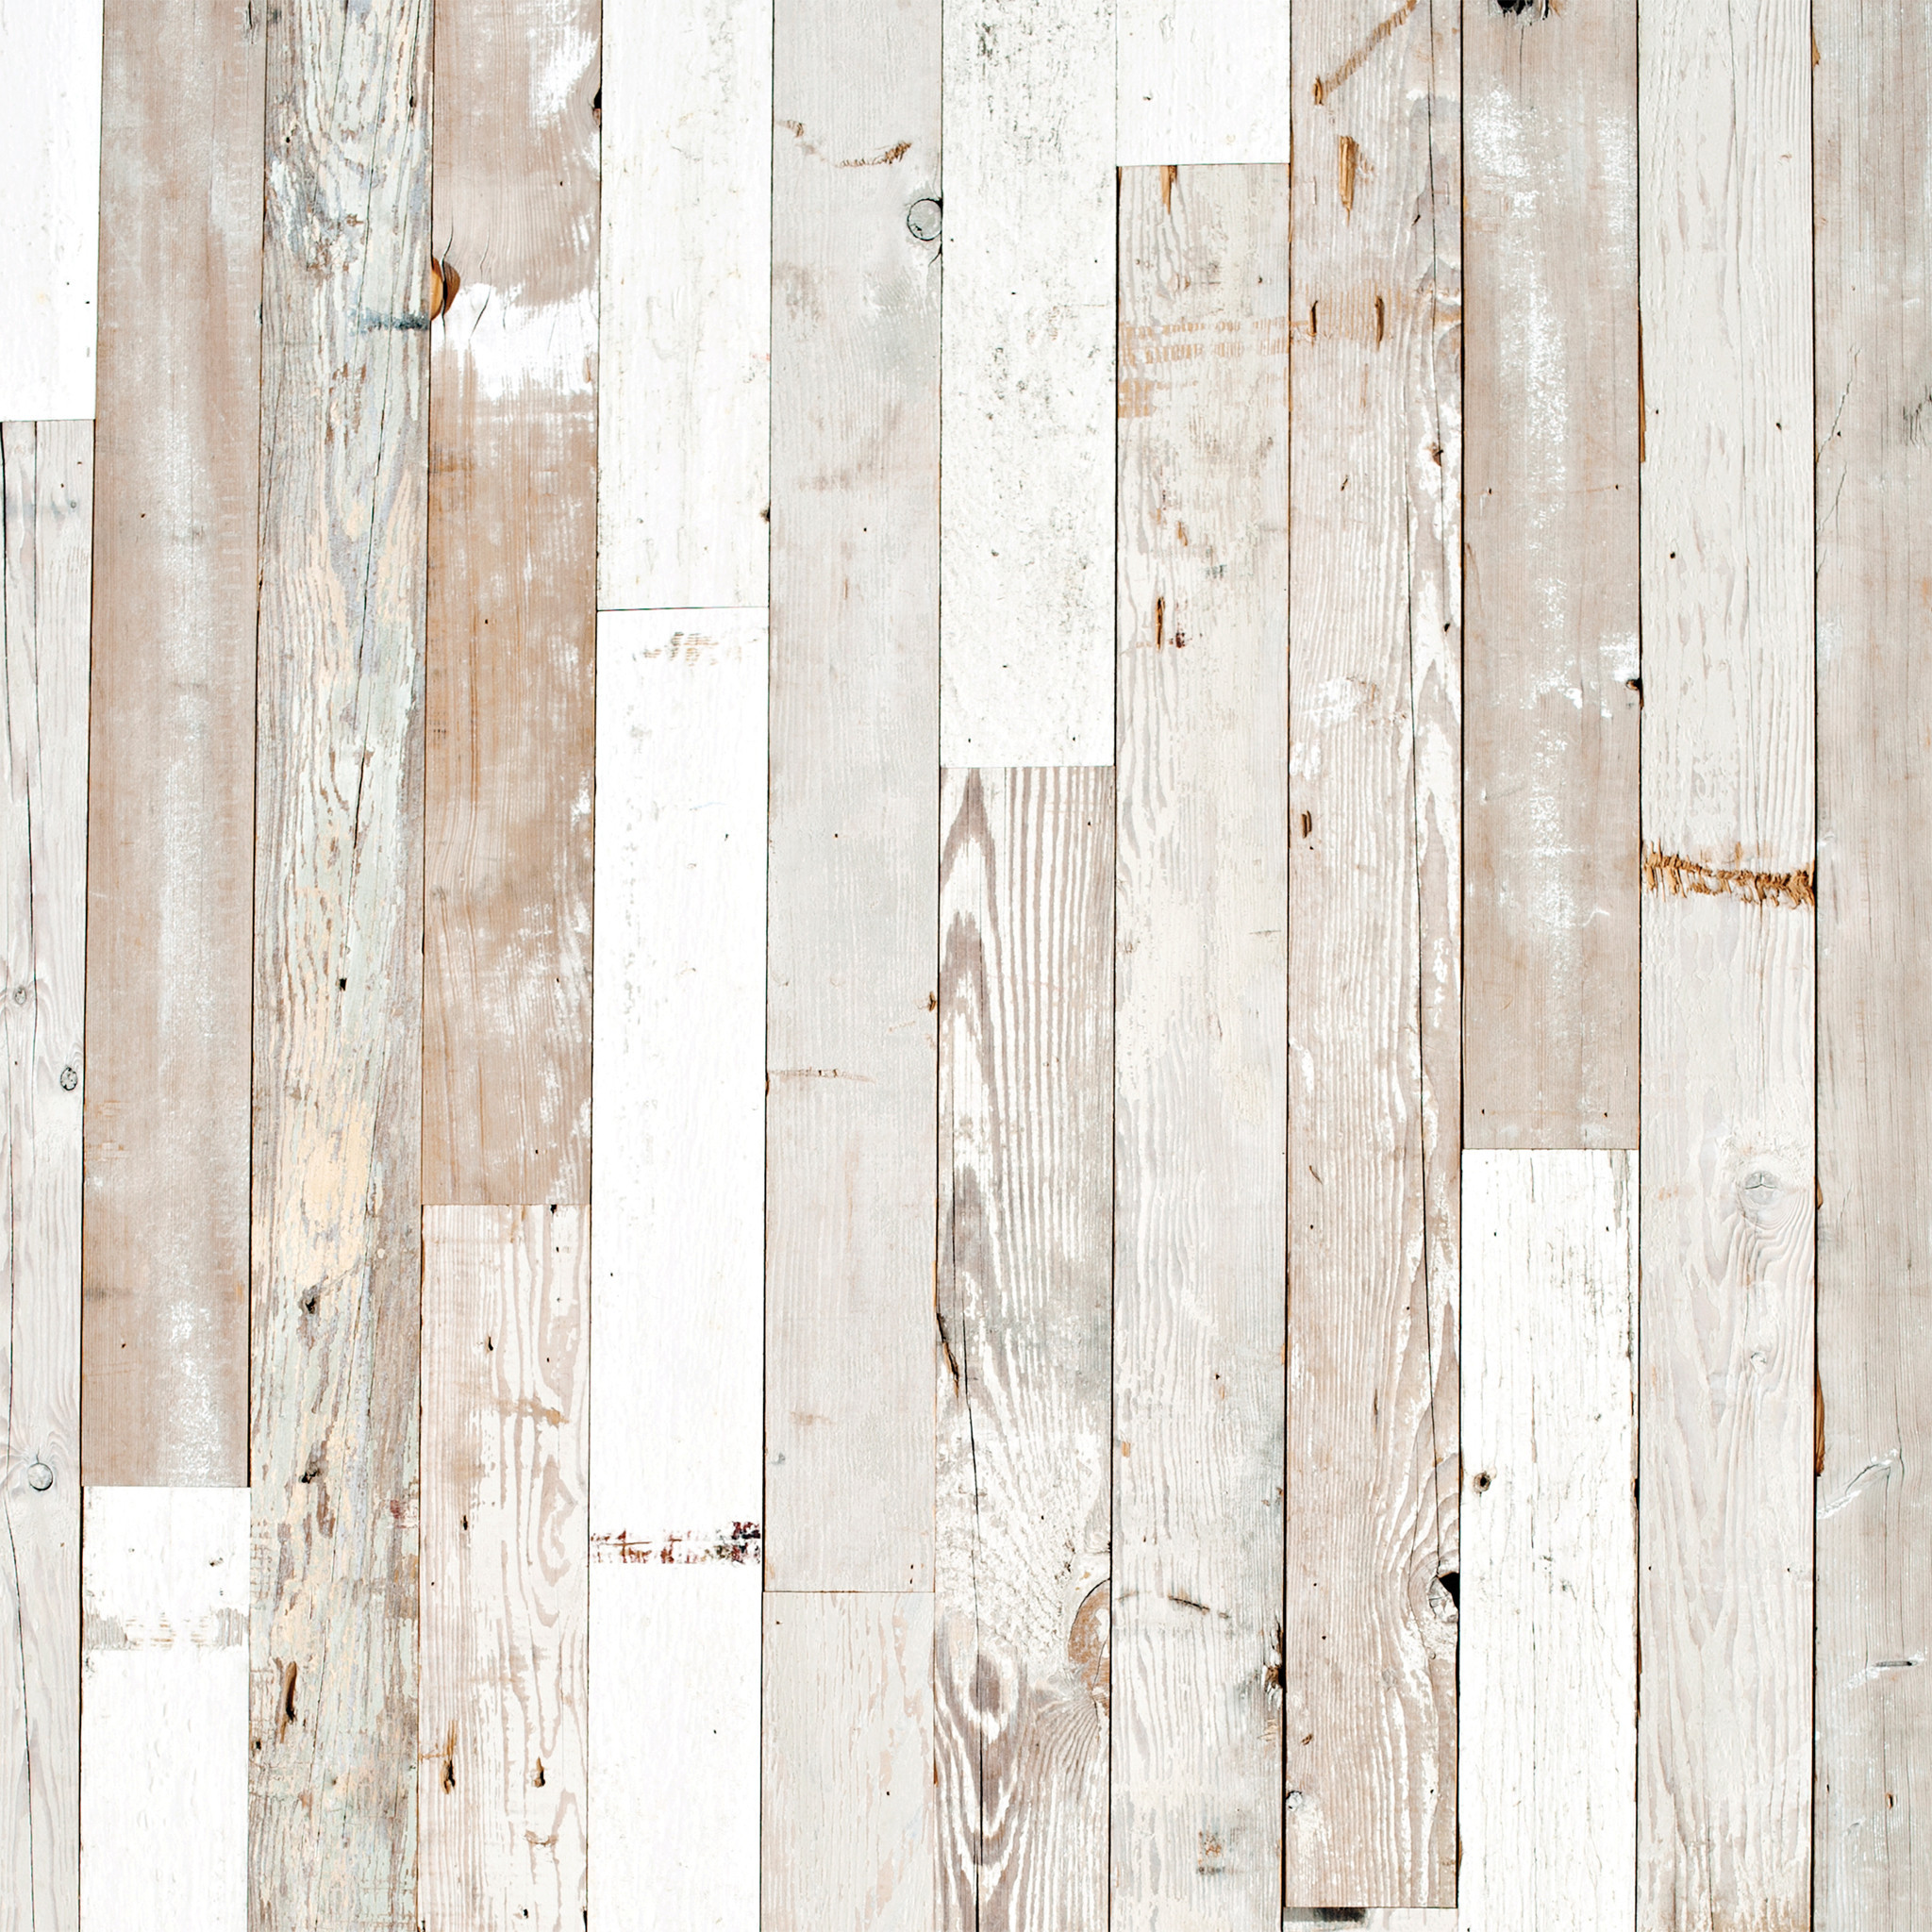 White Washed Wood Floor Texture Rustic white wash photo